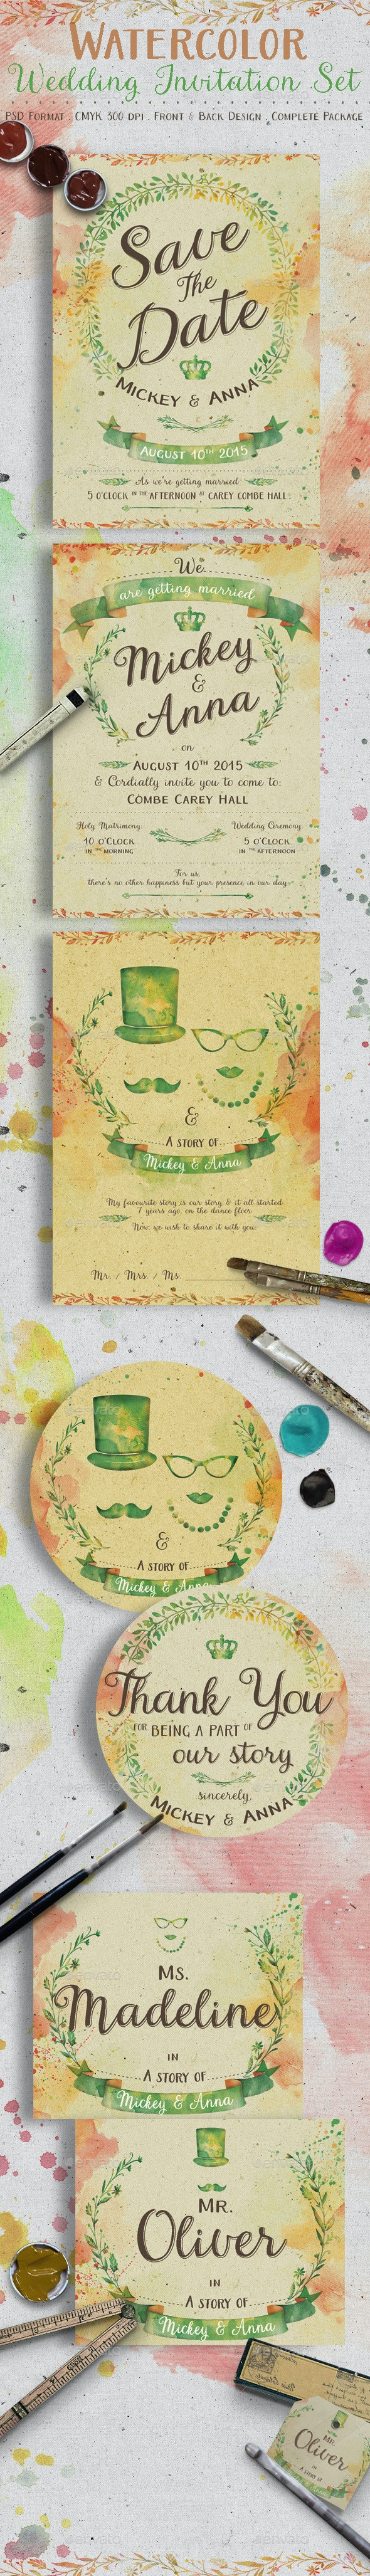 Watercolor Wedding Invitation Set - Weddings Cards & Invites